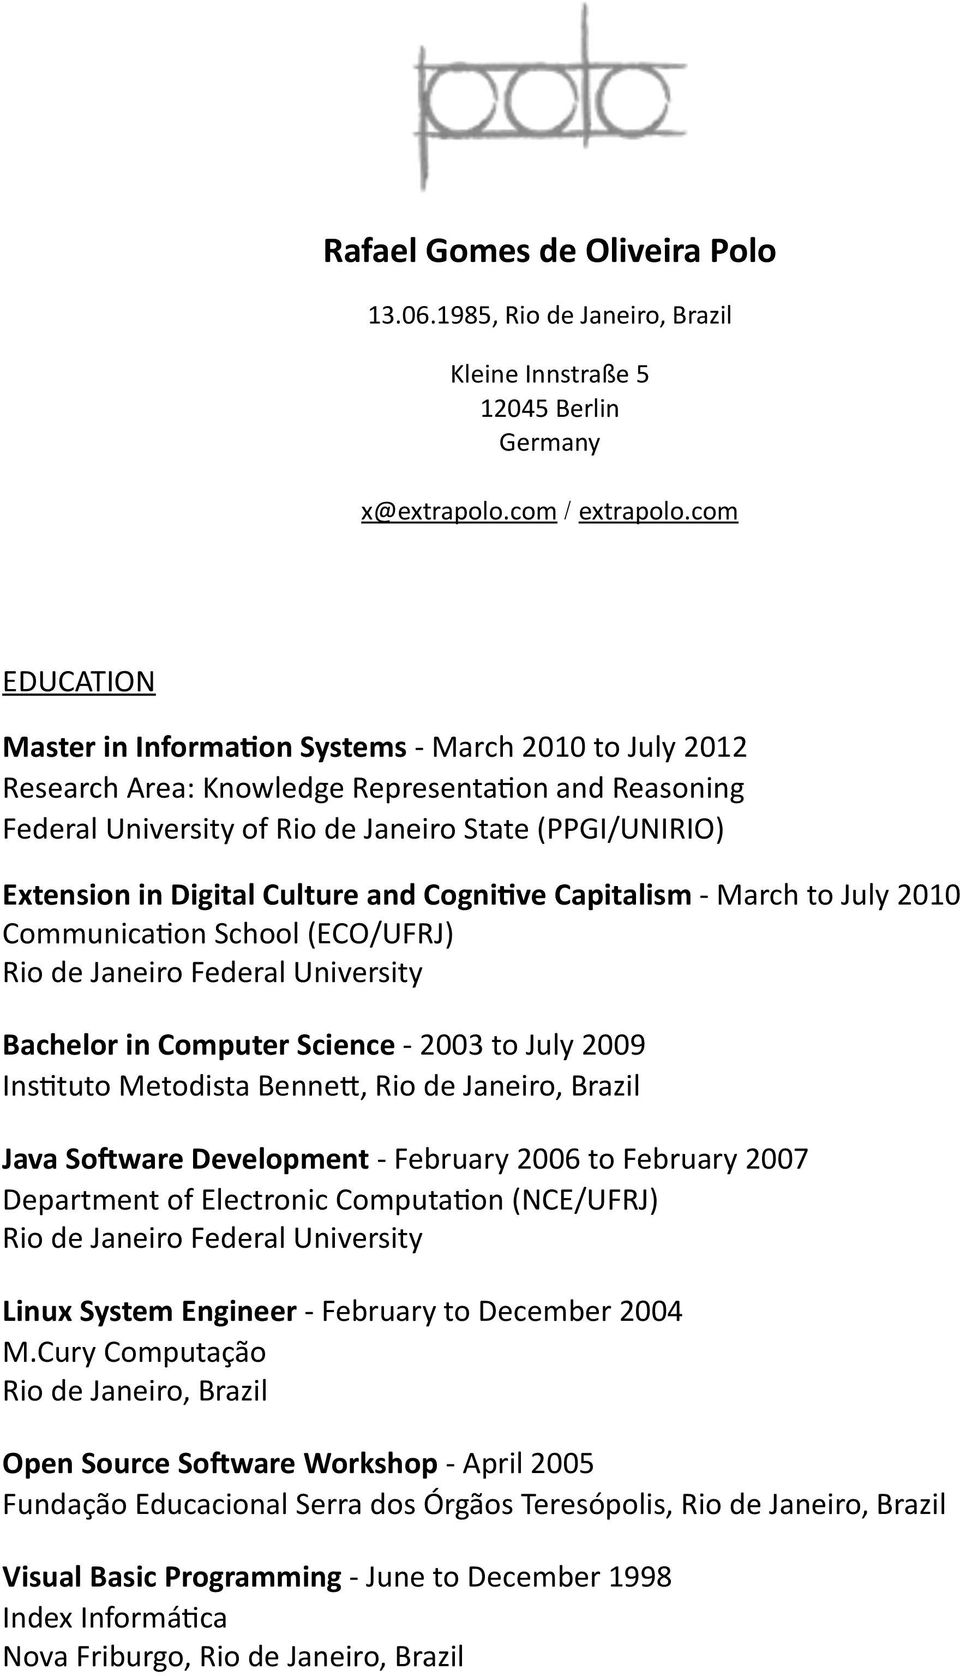 and Cogni5ve Capitalism - March to July 2010 CommunicaTon School (ECO/UFRJ) Rio de Janeiro Federal University Bachelor in Computer Science - 2003 to July 2009 InsTtuto Metodista Benne], Java SoCware